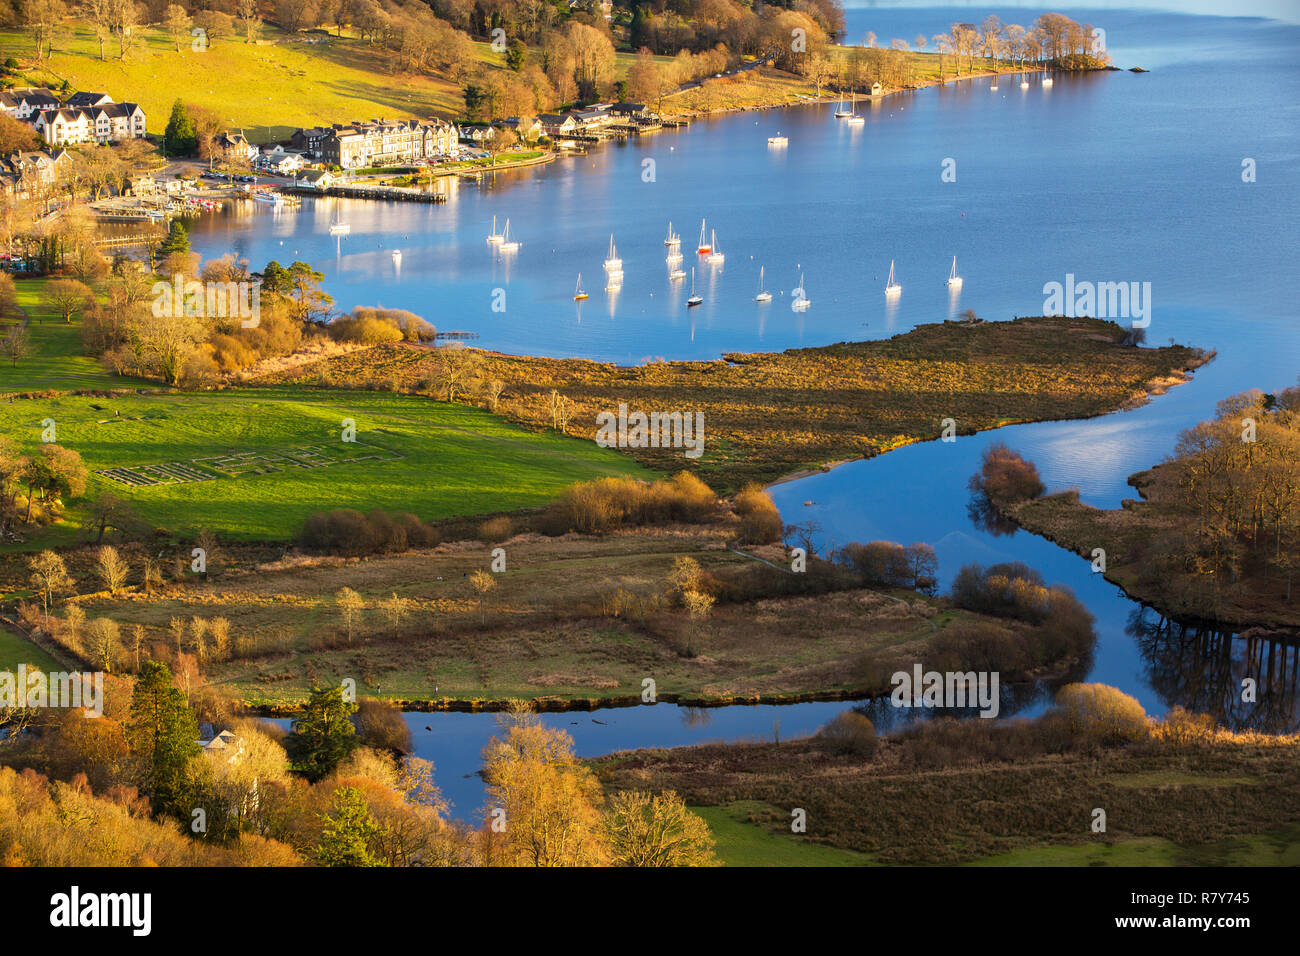 Looking down onto Galava Roman fort at the head of Lake Windermere from Todd Crag, Lake District, UK. - Stock Image